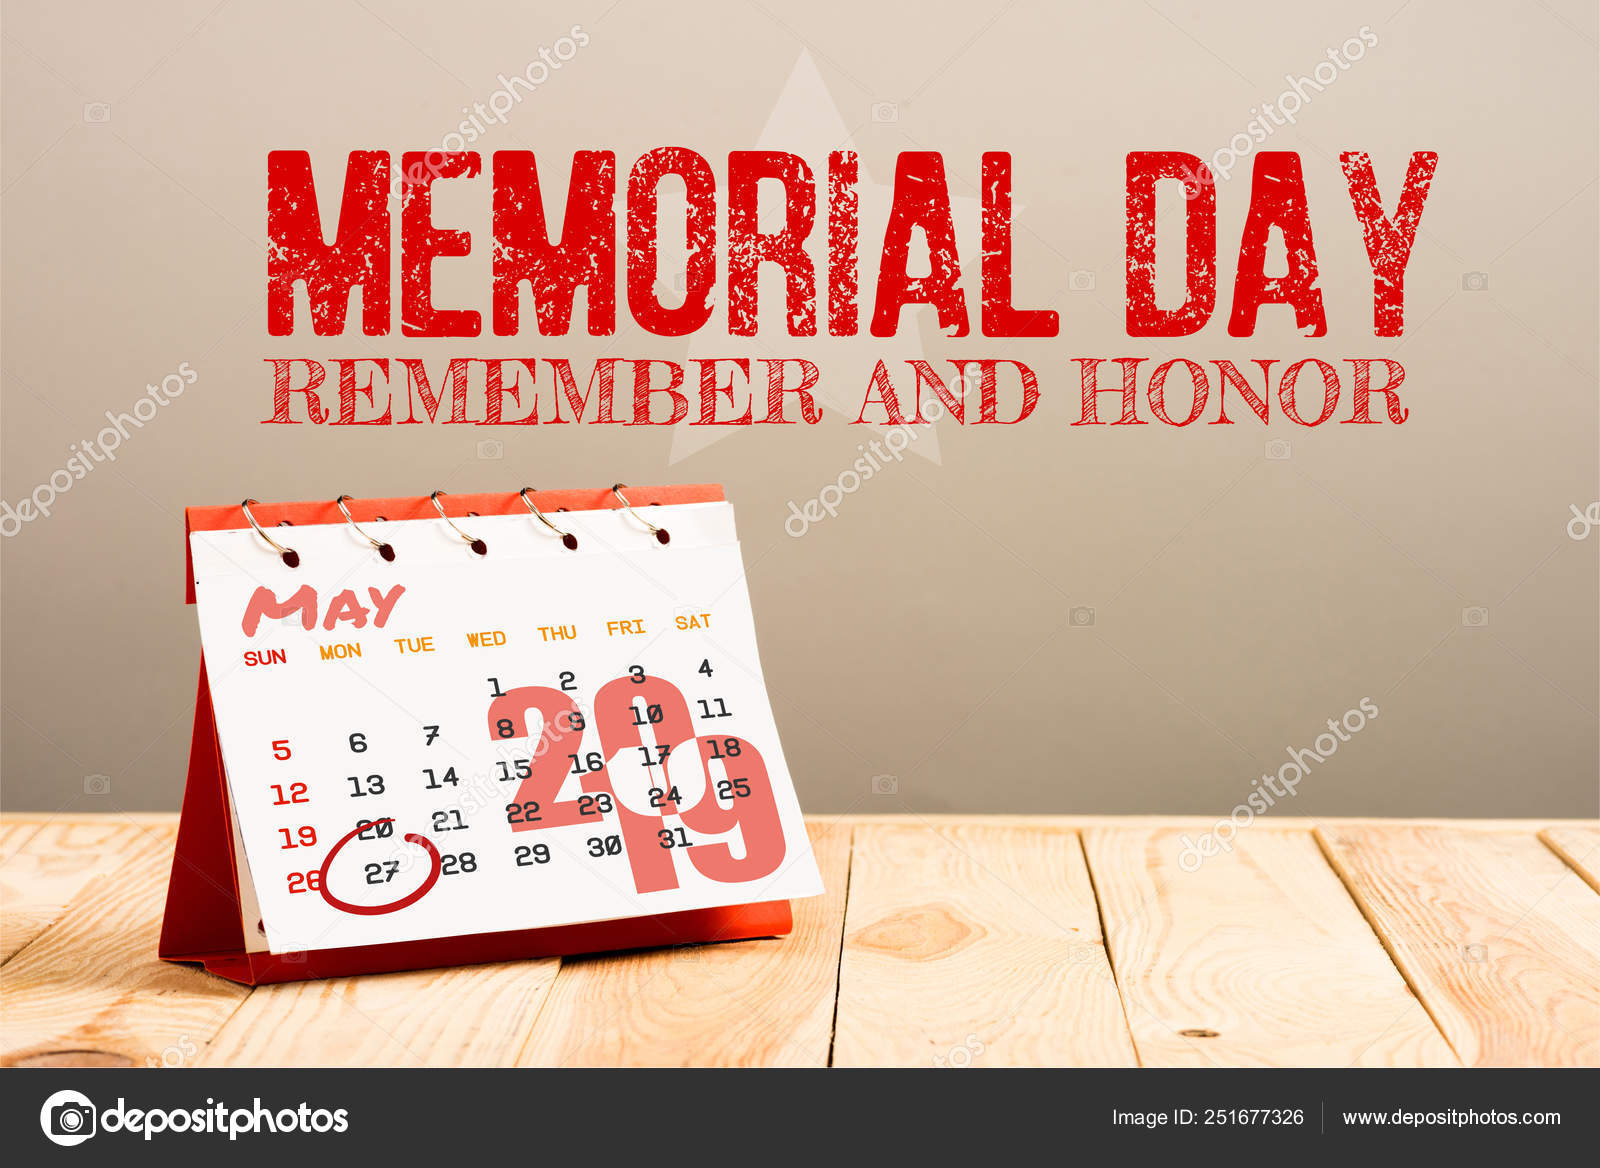 May 2019 Calendar Memorial Day Calendar 27Th May 2019 Date Isolated Beige Memorial Day Red